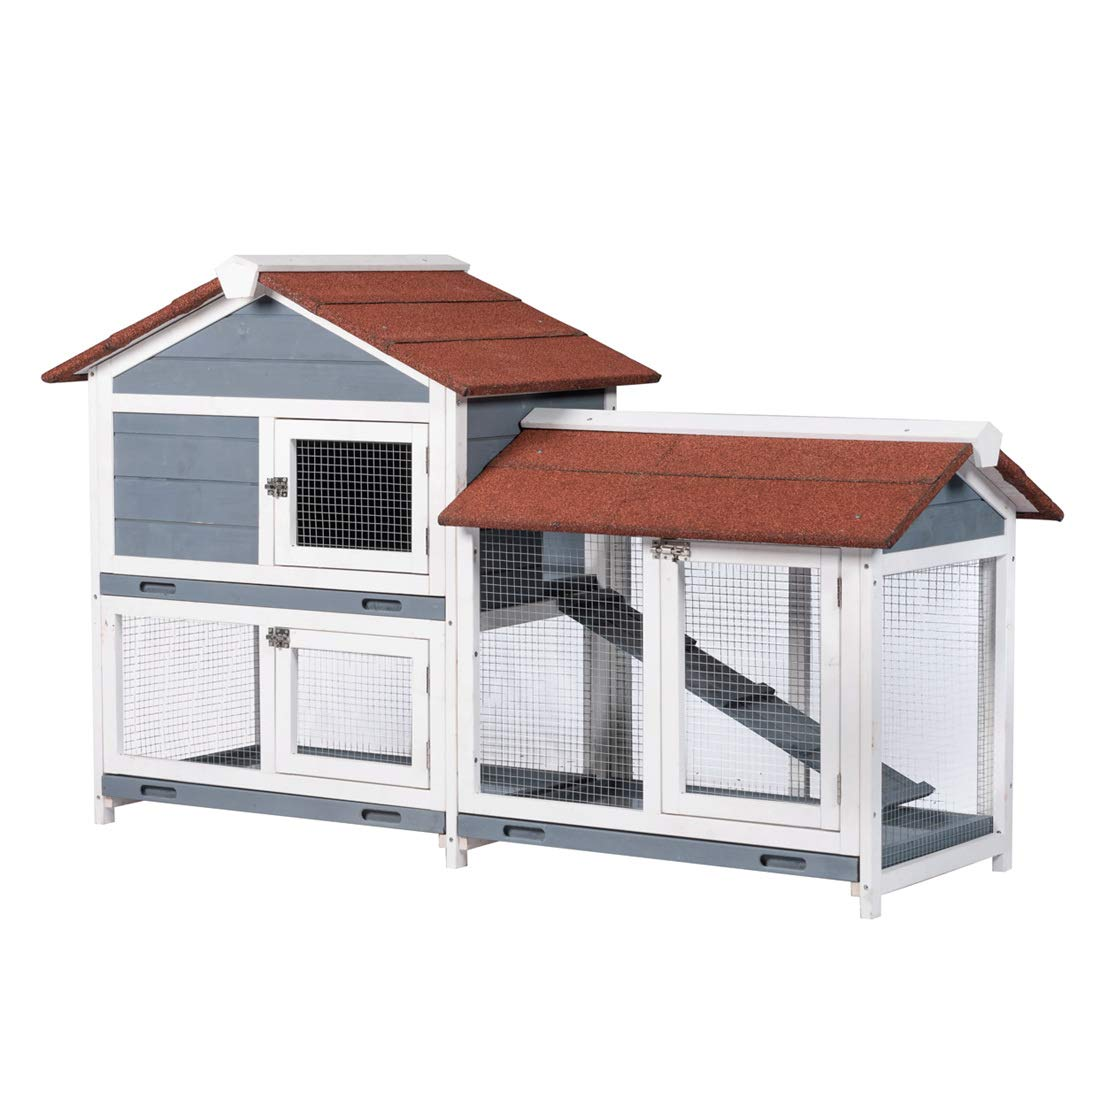 Good Life Two Floors 62'' Wooden Outdoor Indoor Roof Waterproof Bunny Hutch Rabbit Cage Guinea Pig Coop PET House for Small to Medium Animals with Stairs and Cleaning Tray PET537 by GOOD LIFE USA